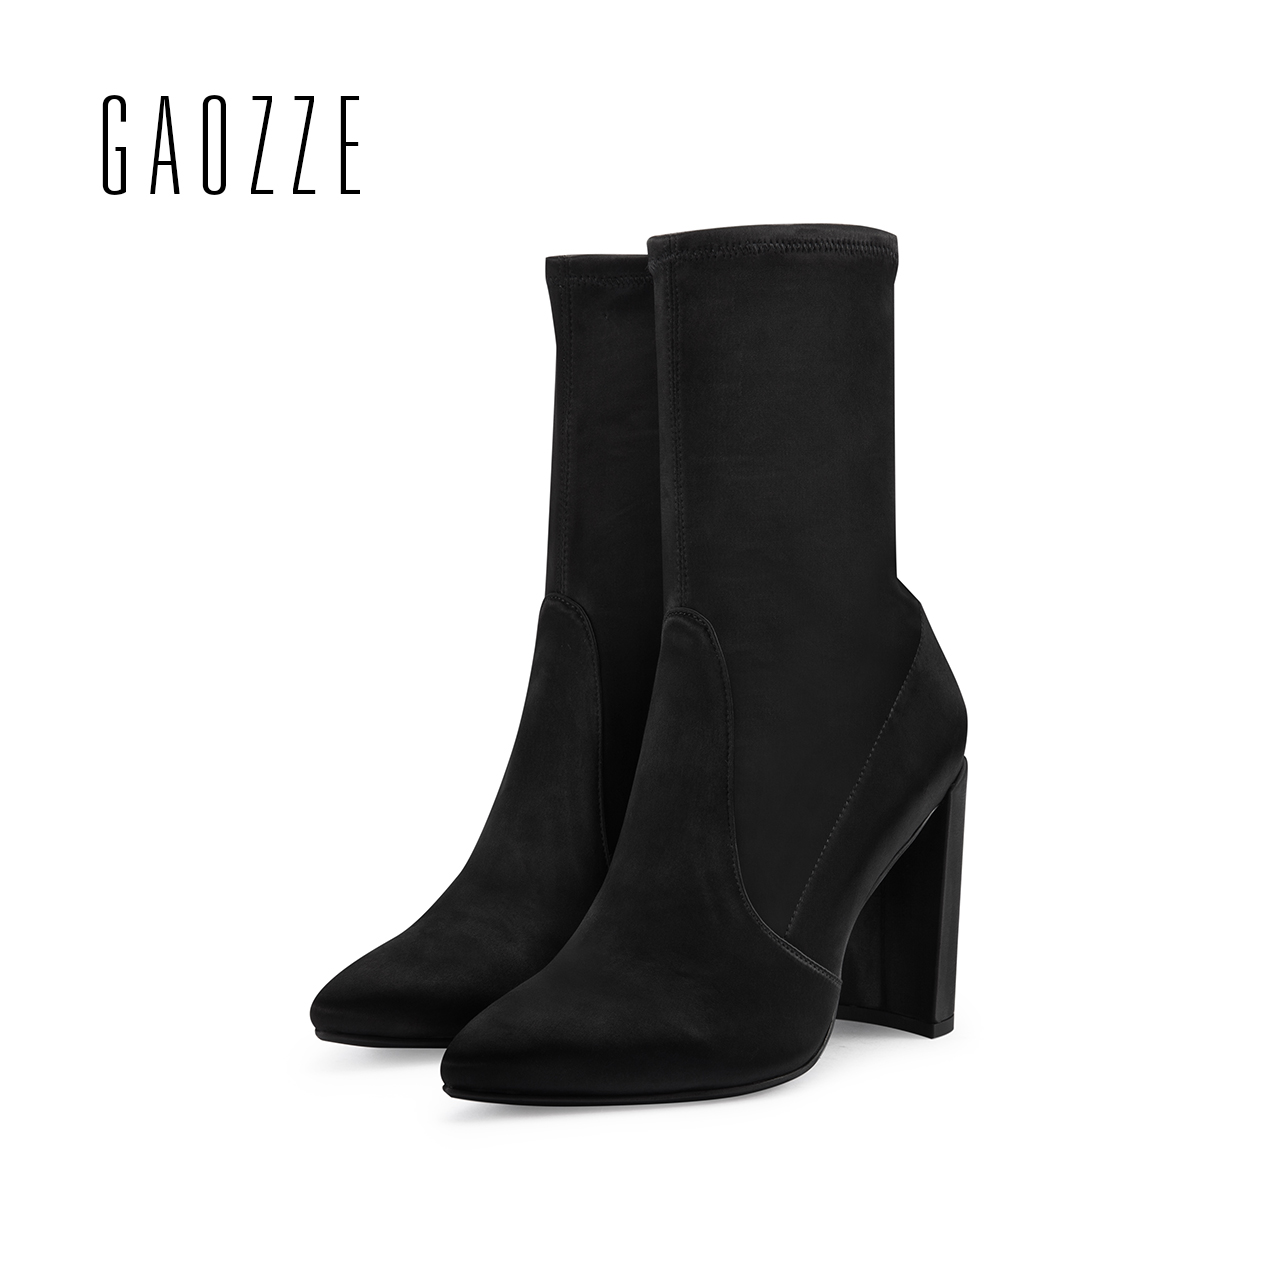 GAOZZE winter boots women 9.5CM thick high heels Mid-Calf elastic Boots brand female high-heeled socks boots Slip-On 2017 new gaozze fashion women socks boots mid calf thick high heels boots women comfortable elastic knitted fabric female boots brand